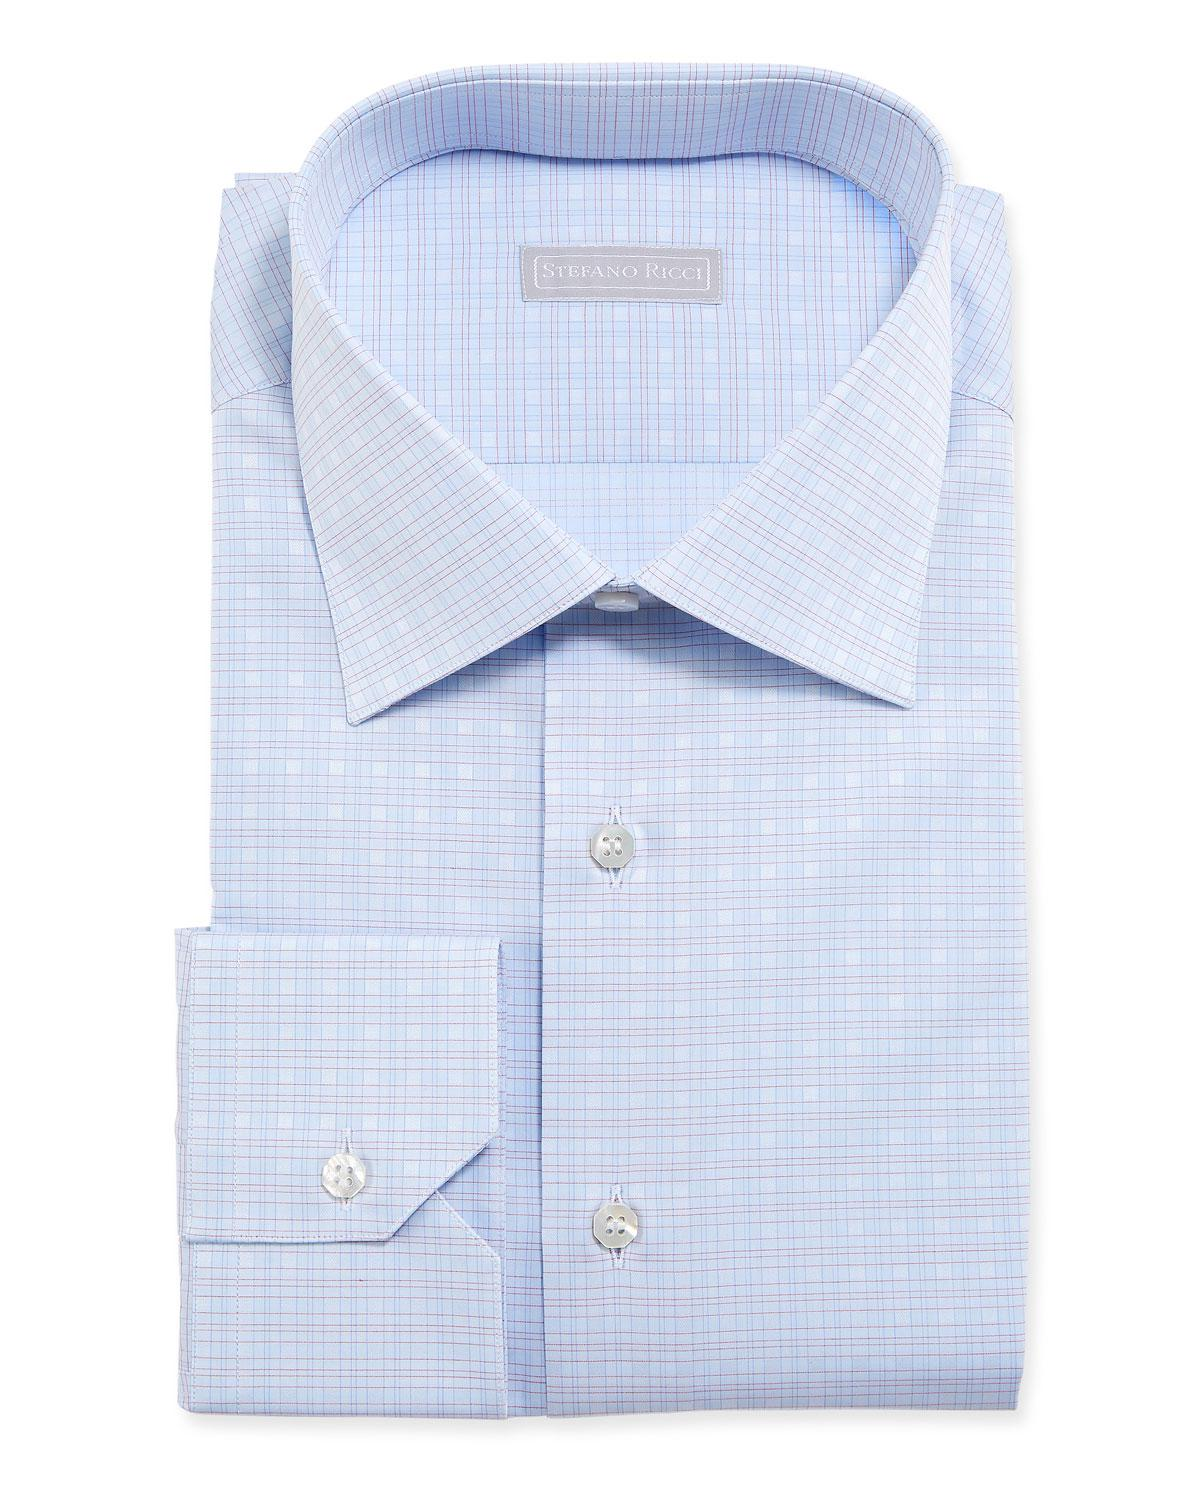 Lyst Stefano Ricci Mens Small Check Dress Shirt In Blue For Men